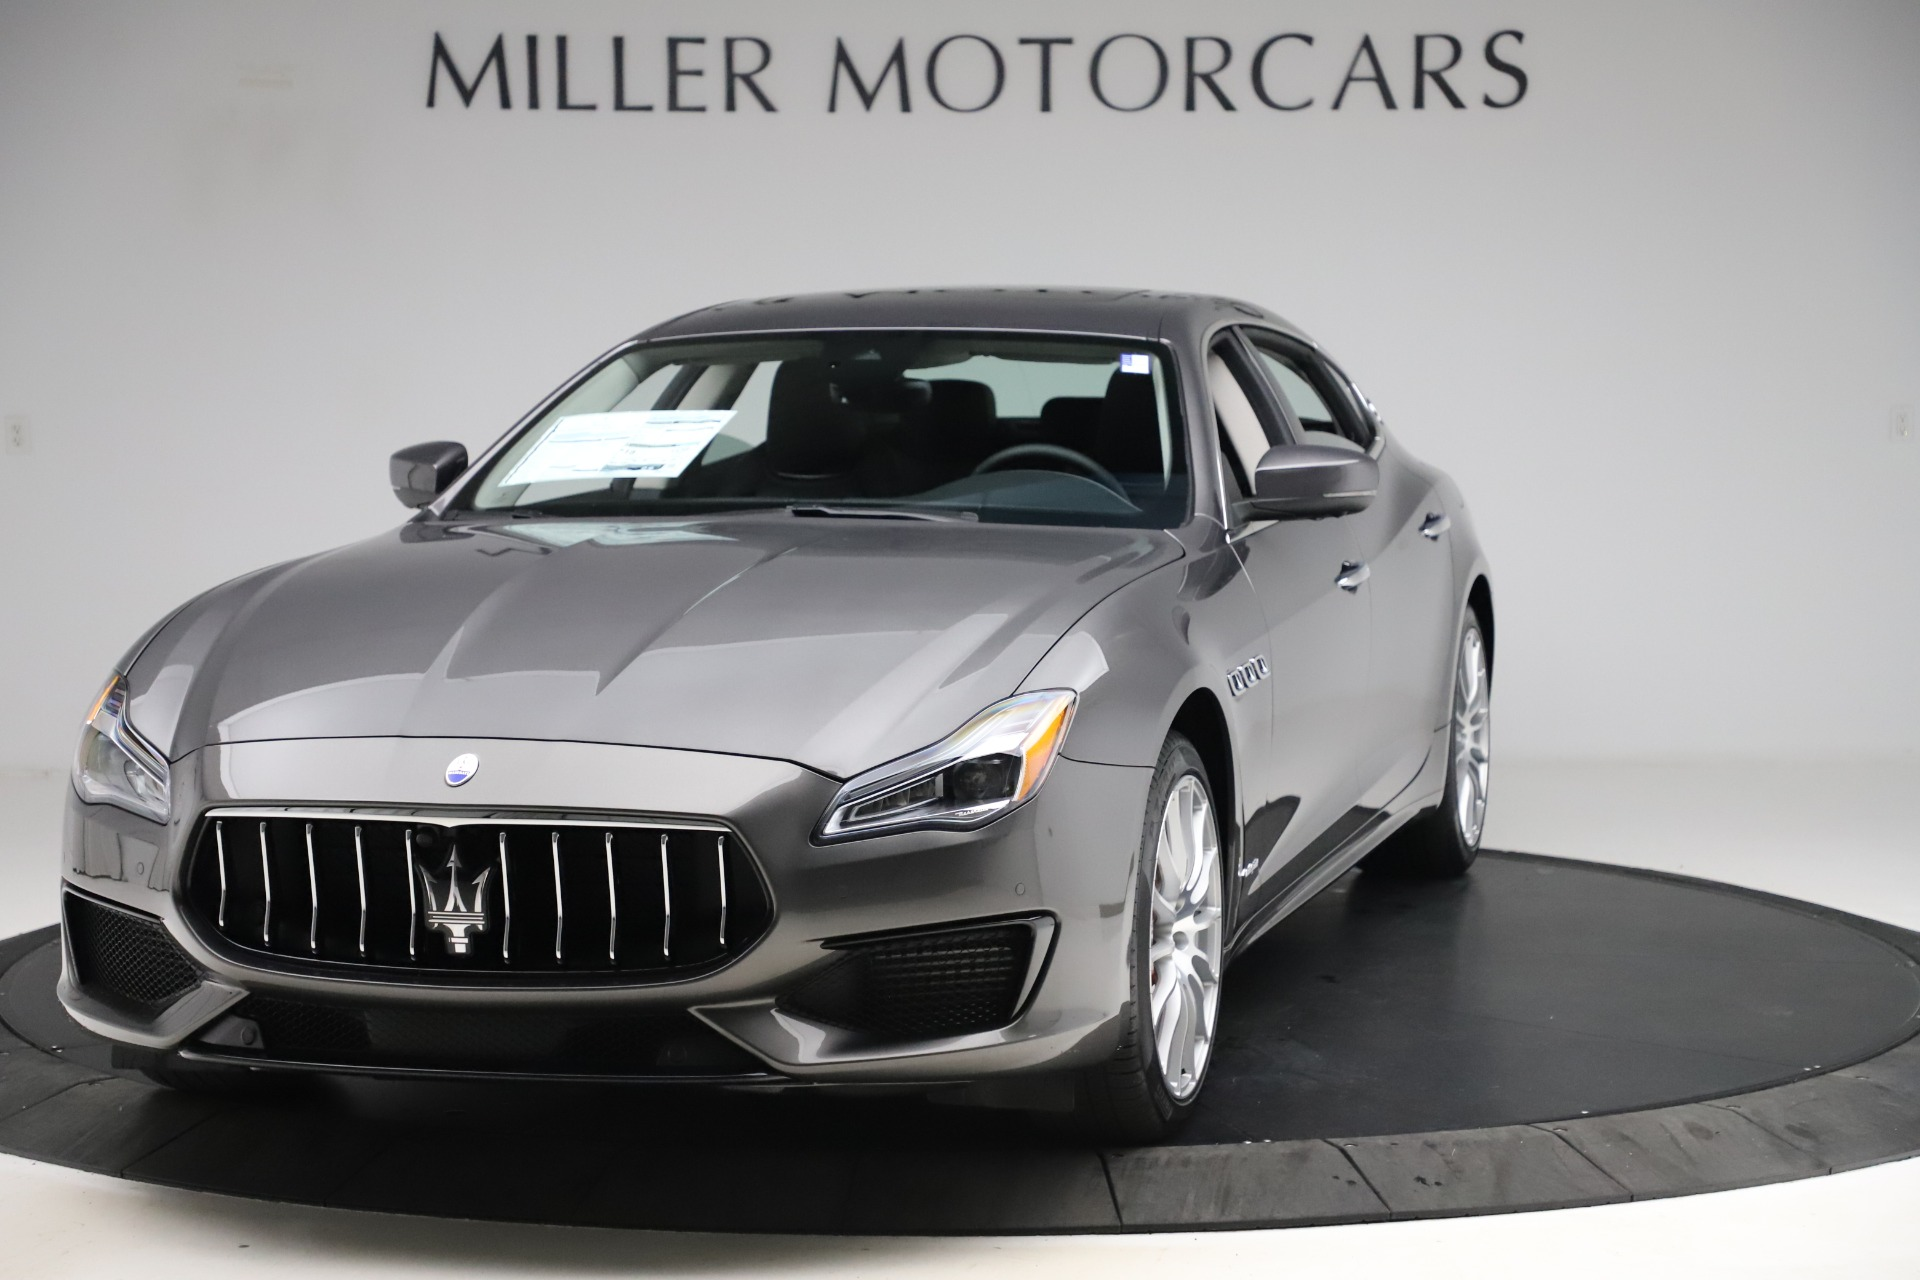 New 2020 Maserati Quattroporte S Q4 GranSport for sale $121,885 at Alfa Romeo of Westport in Westport CT 06880 1